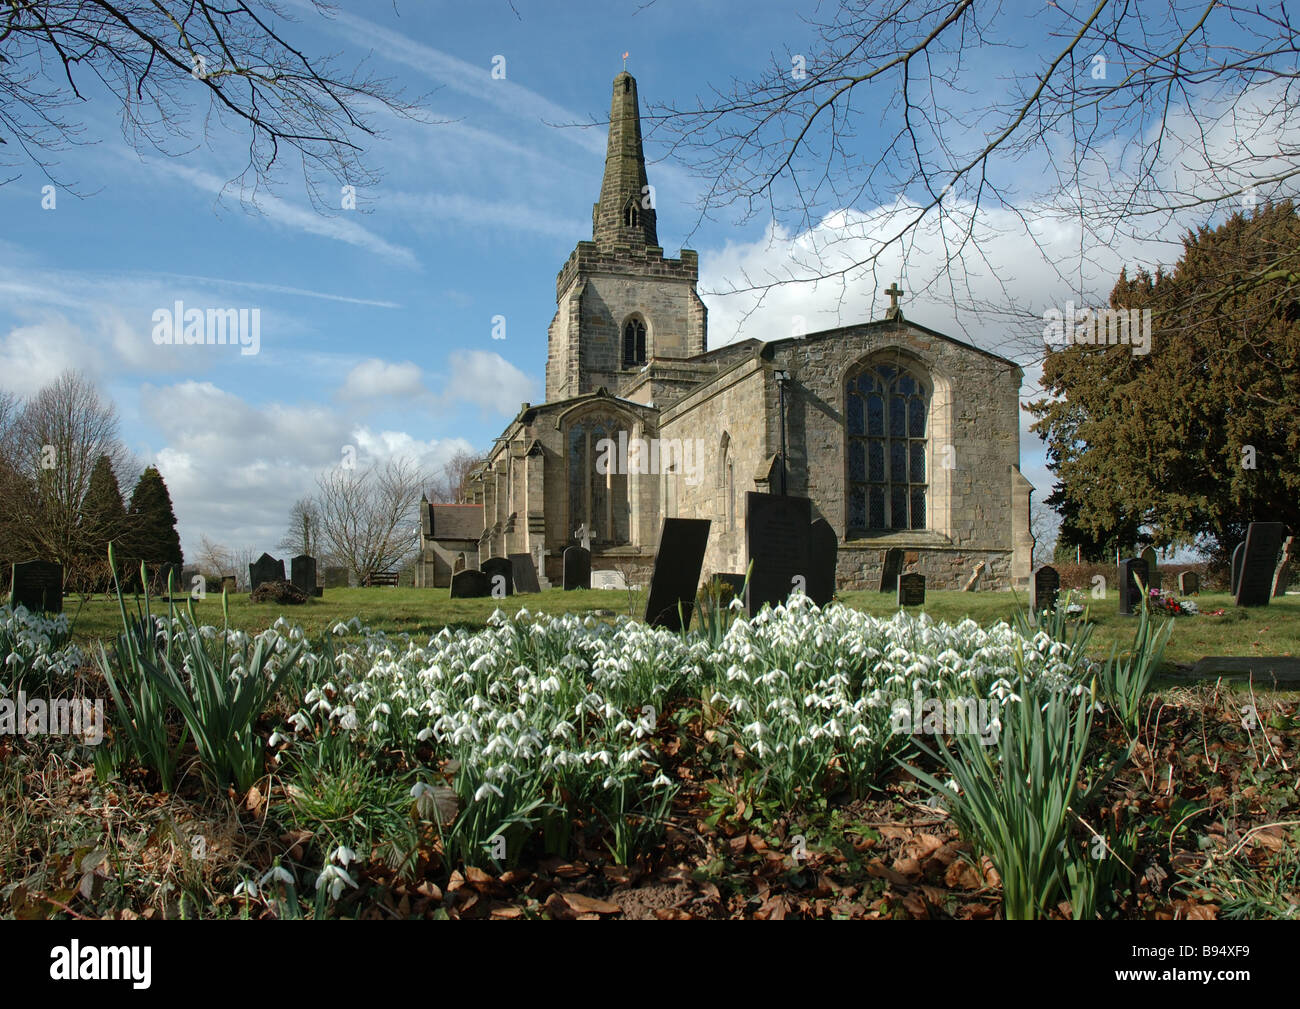 display of snowdrops, St Ediths church, Orton on the Hill, Leicestershire, England, UK - Stock Image